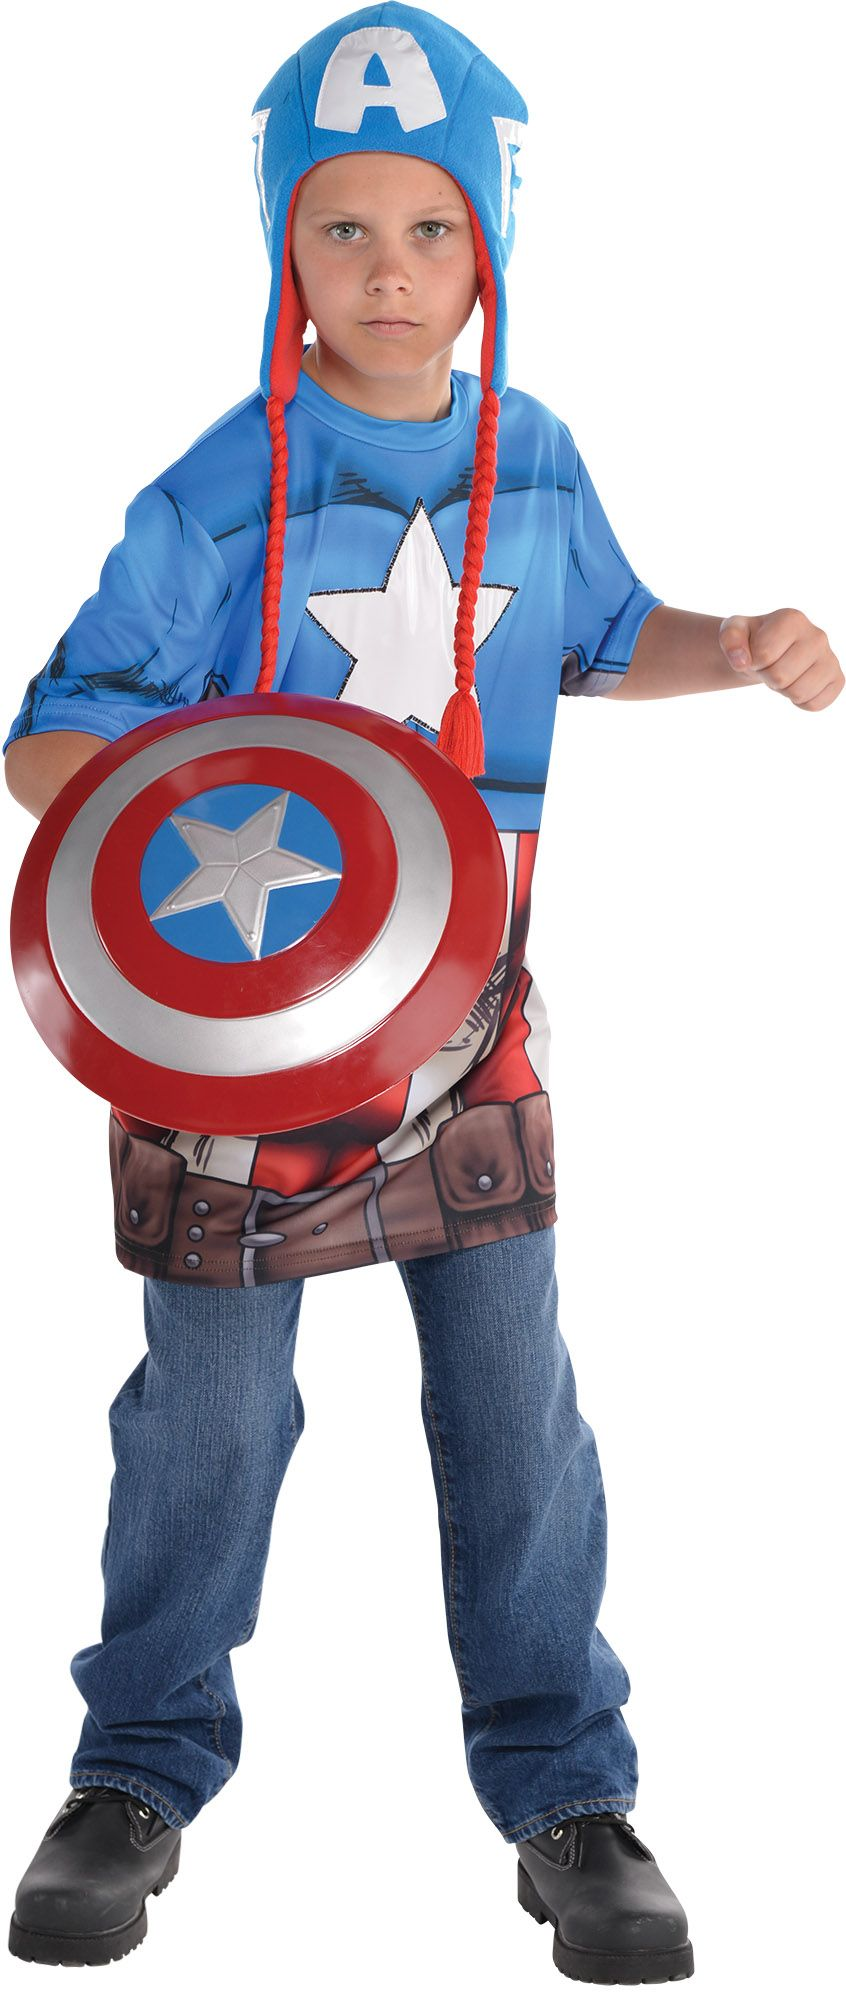 Create Your Look - Boy Captain America